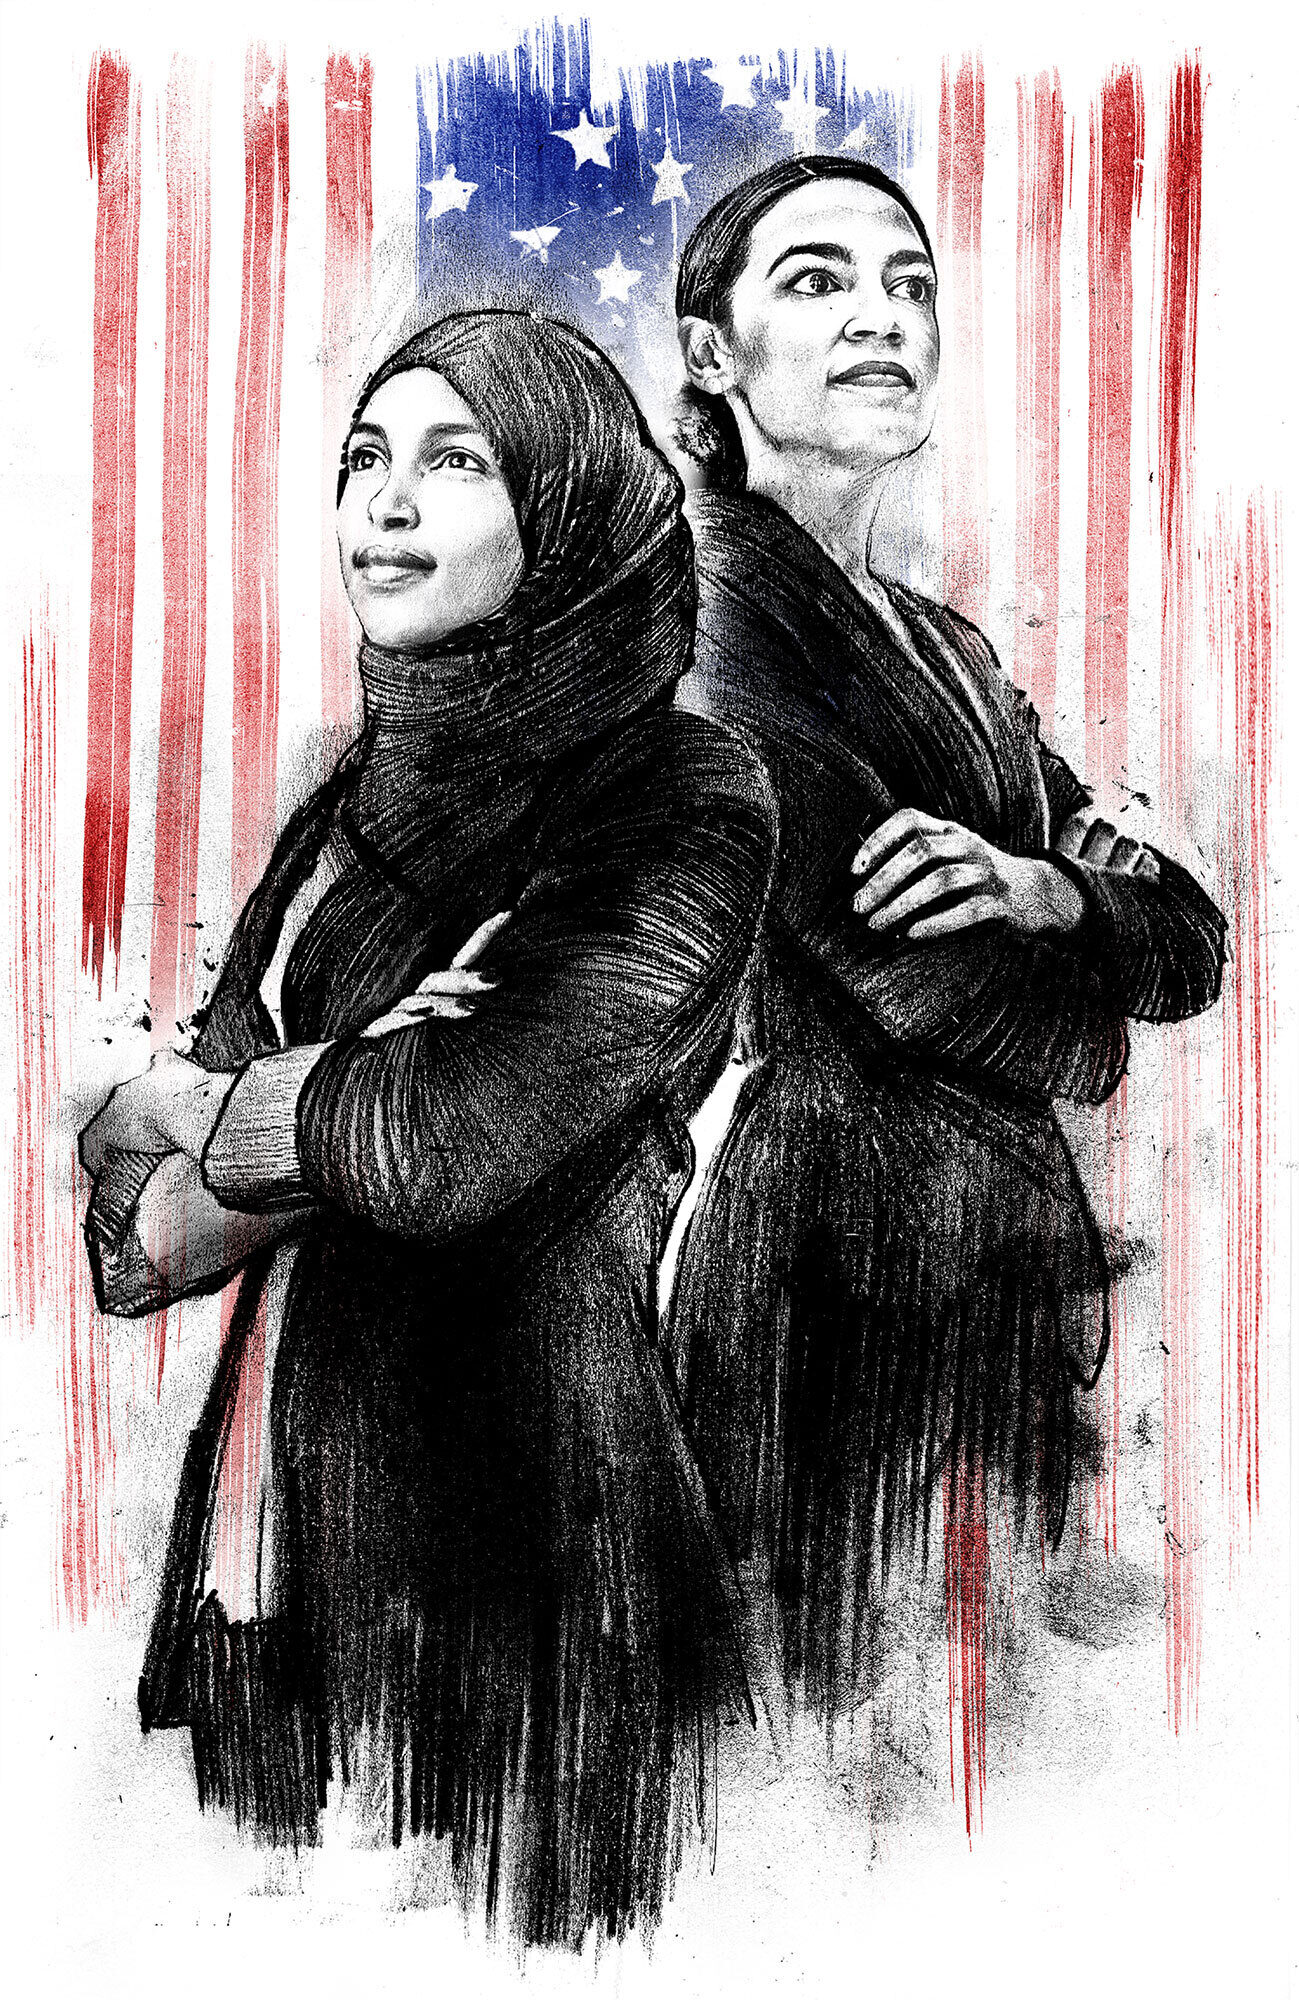 Alexandria Ocasio Cortez Ilhan Omar democratic woman illustration - Kornel Illustration | Kornel Stadler portfolio